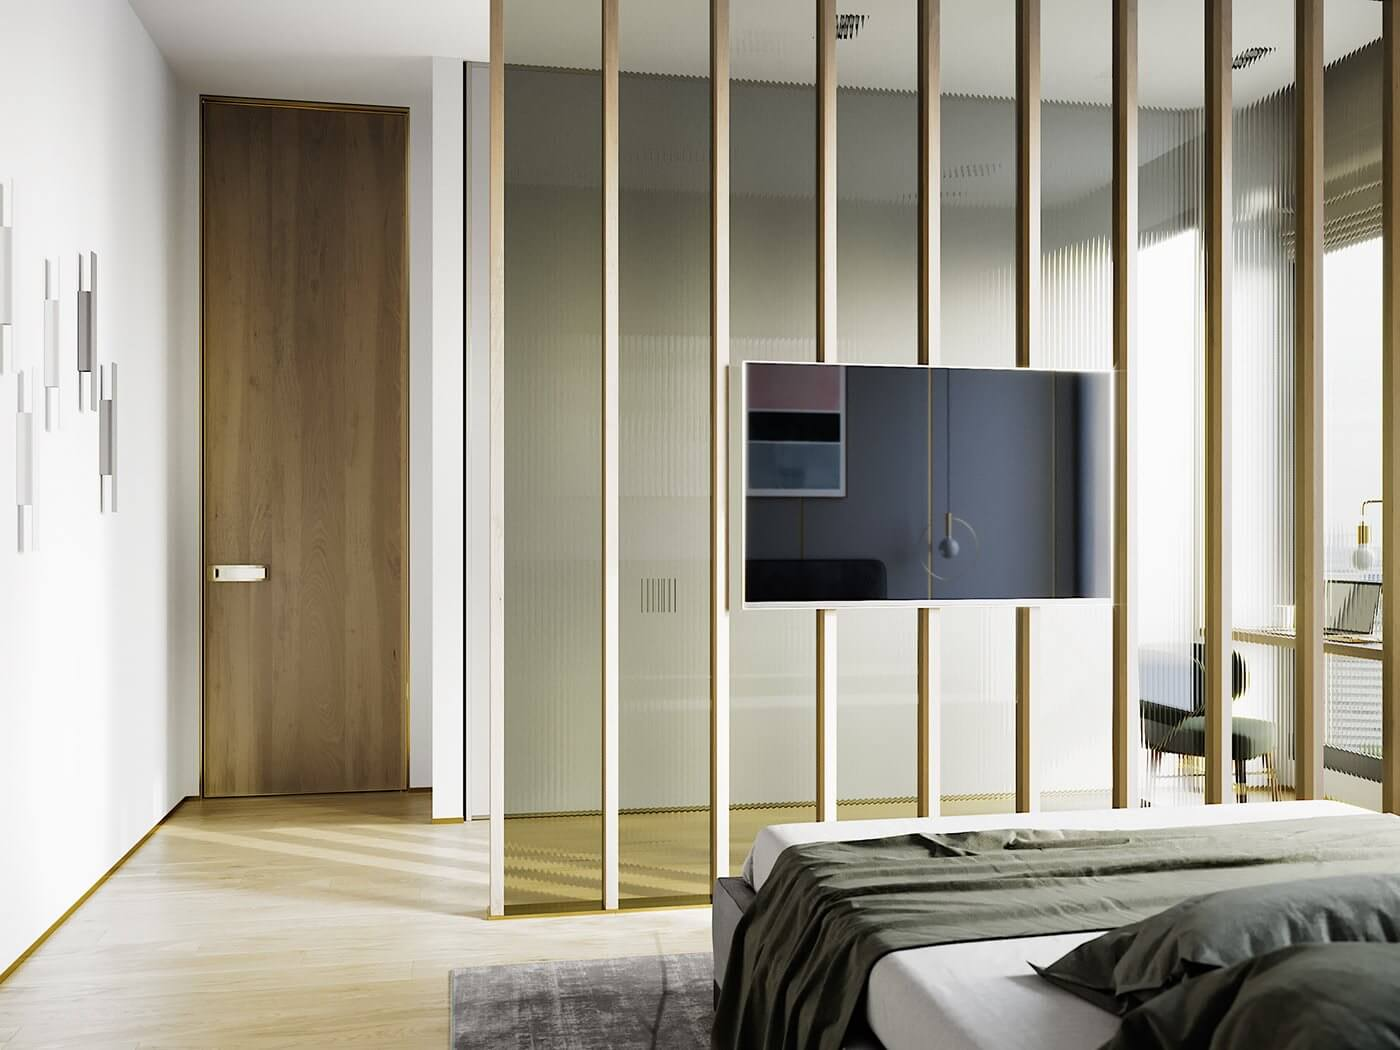 Green gold Apartment bedroom design tv wall wood cladding - cgi visualization